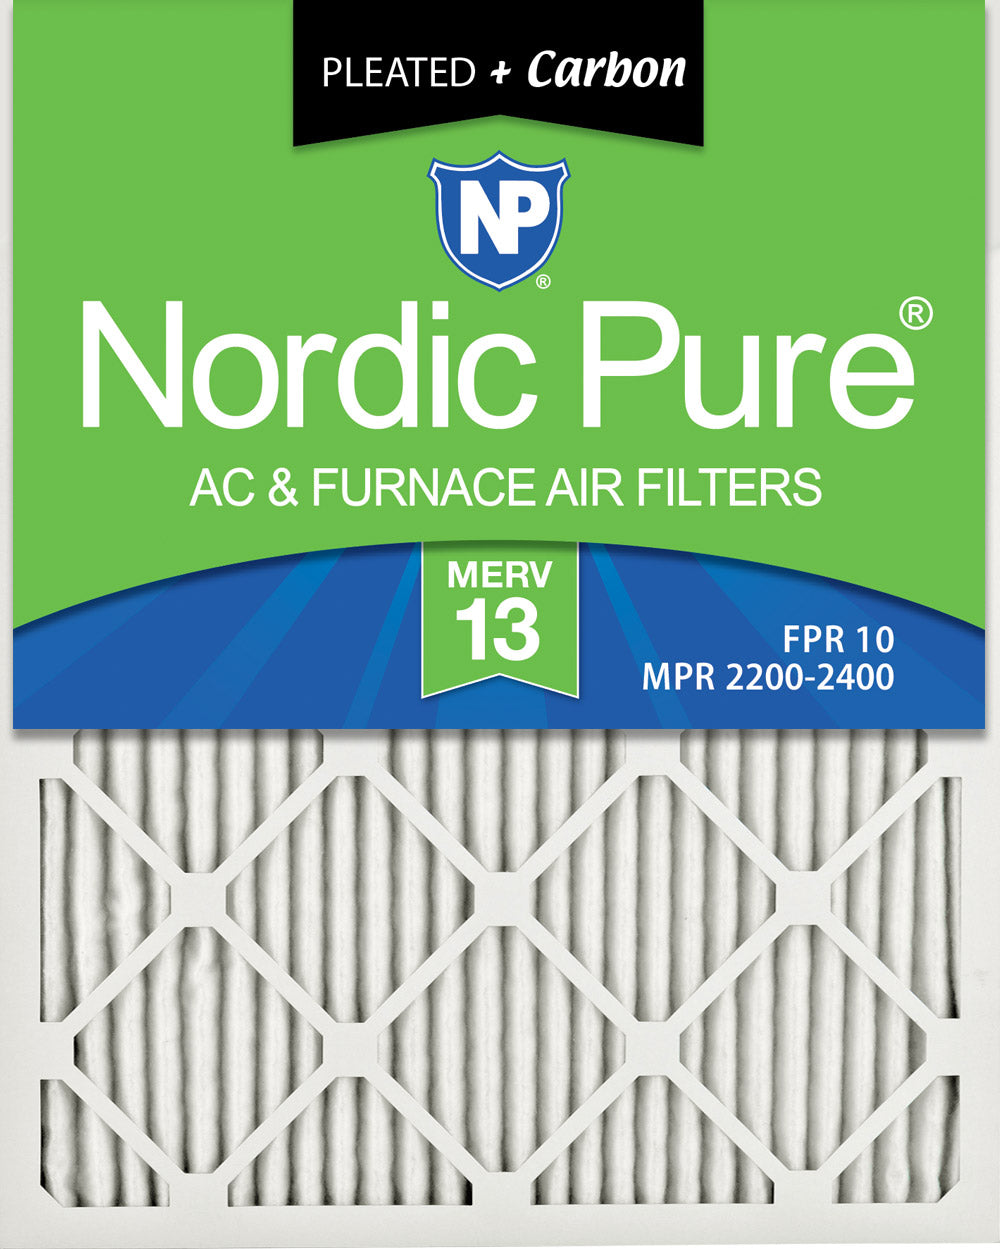 20x25x1 Pleated Air Filters MERV 13 Plus Carbon 6 Pack